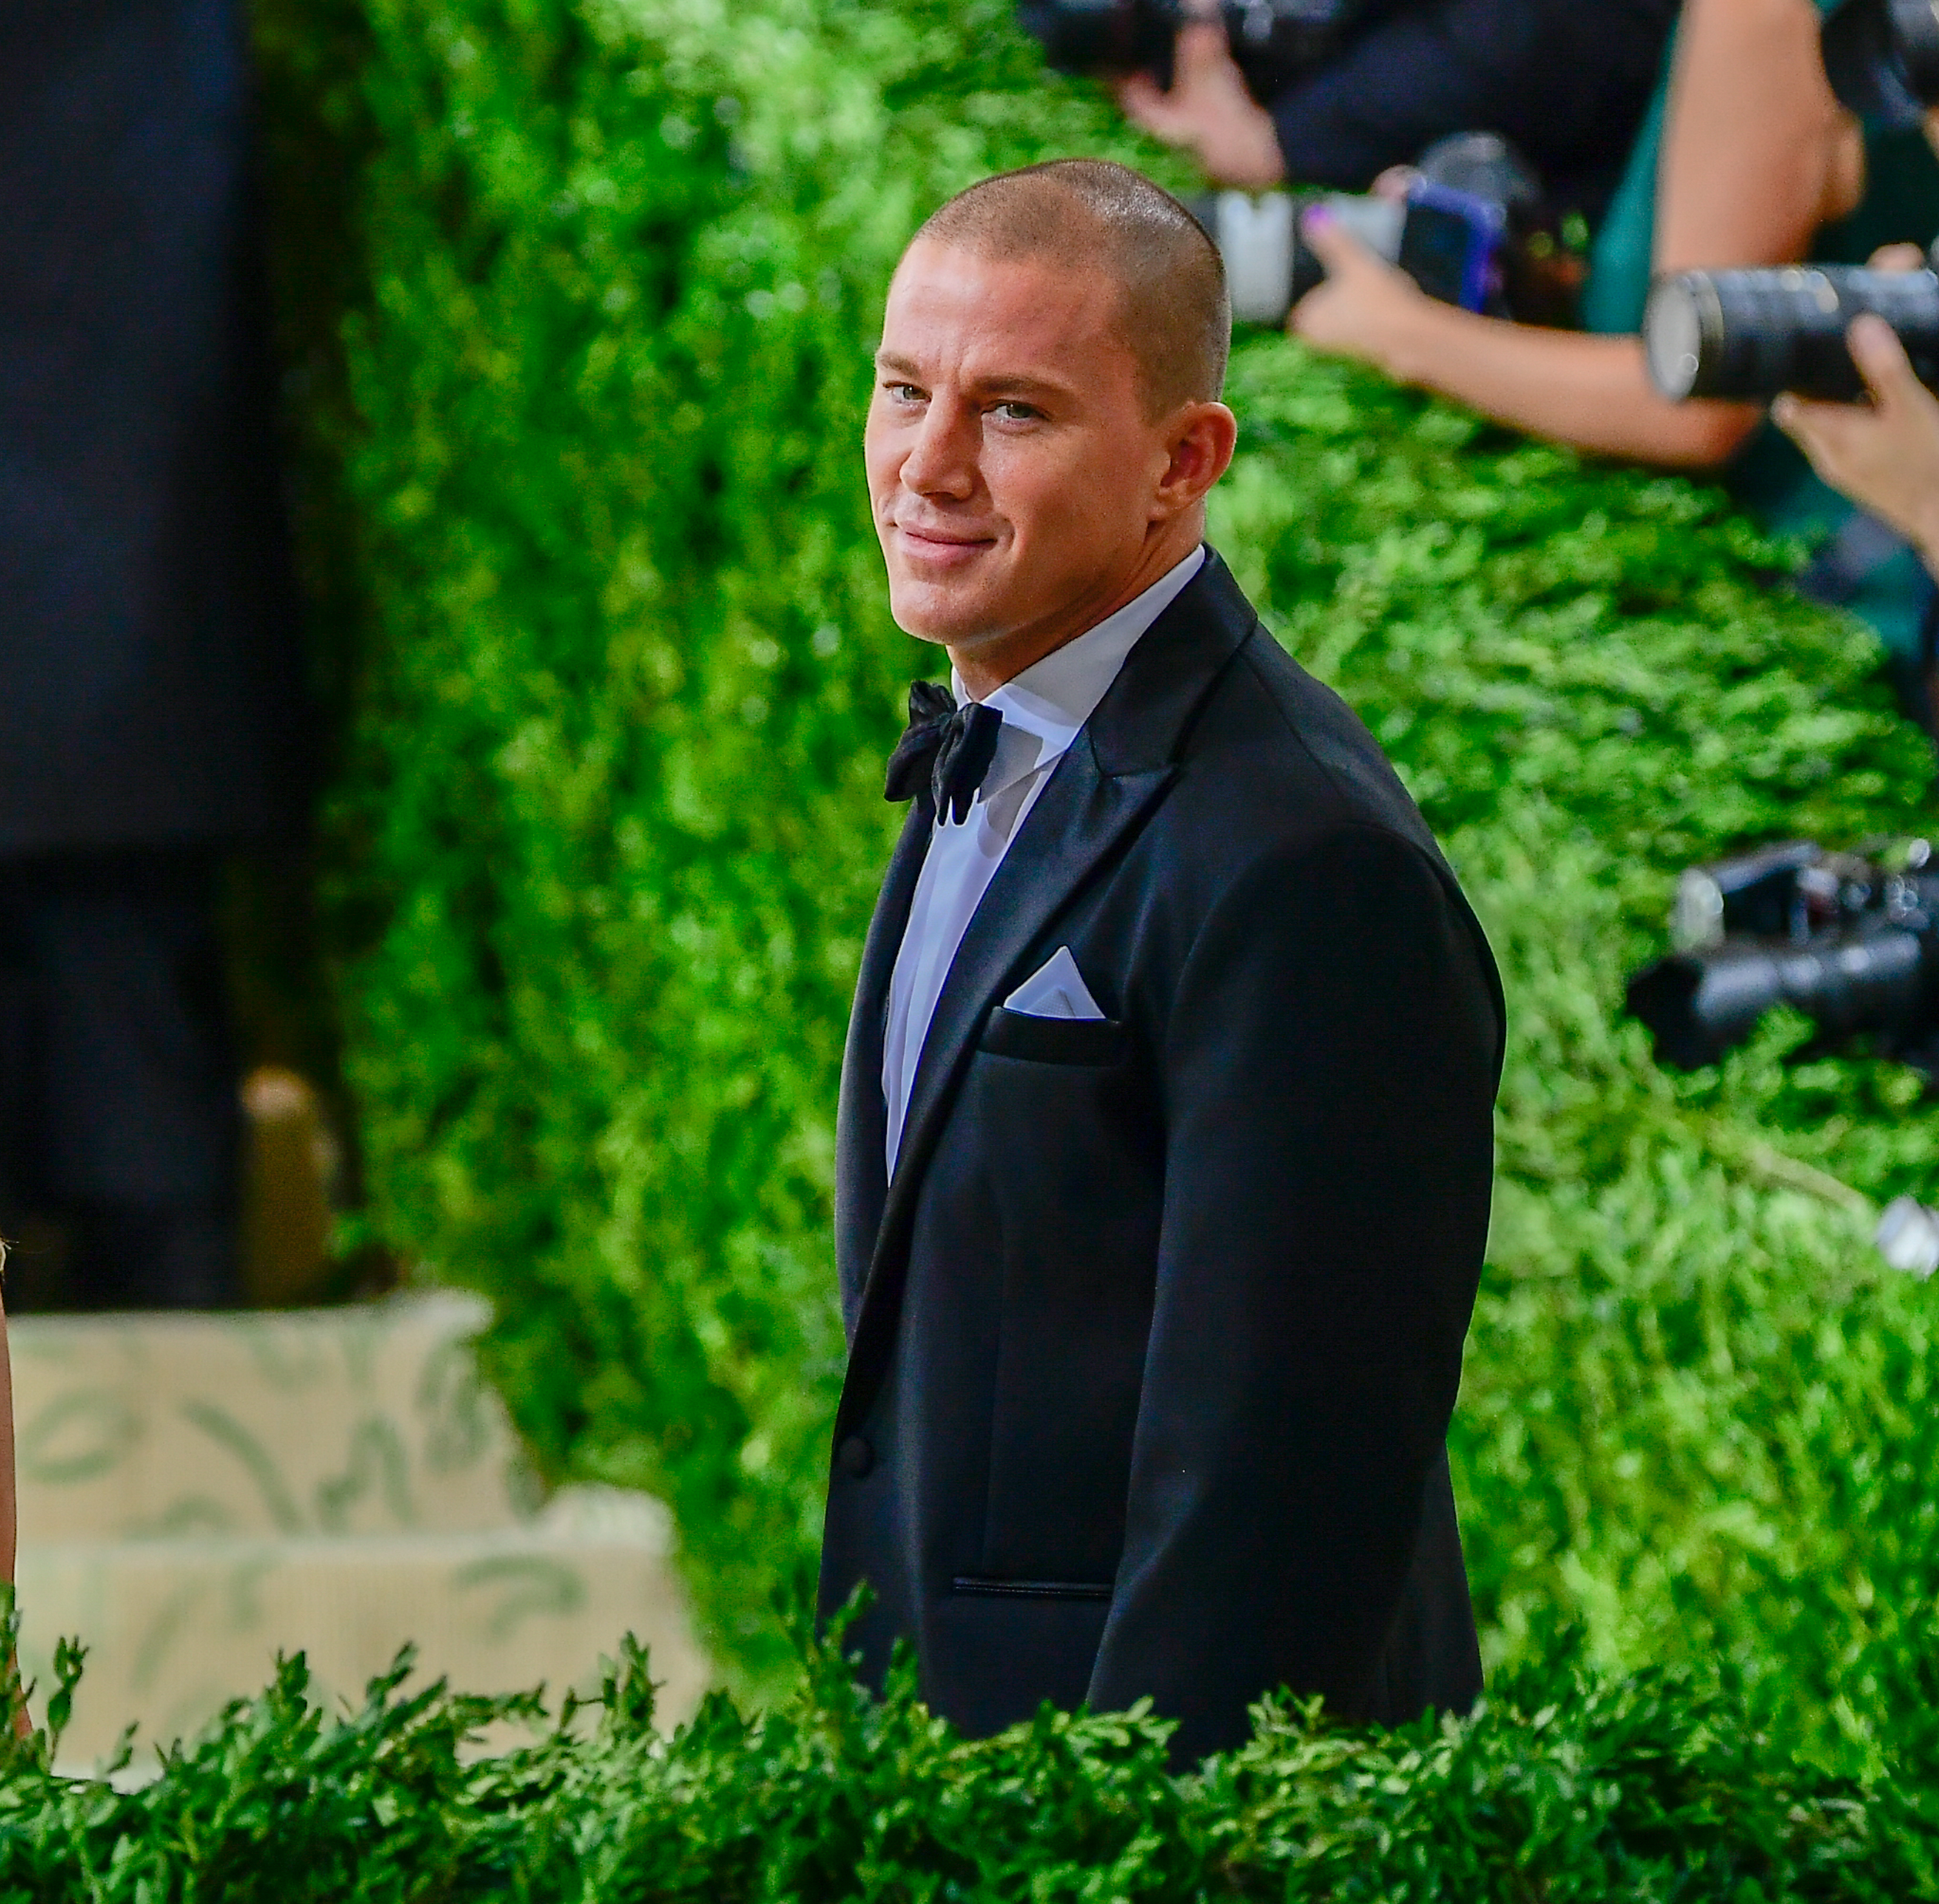 Channing Tatum attends The 2021 Met Gala Celebrating In America: A Lexicon Of Fashion on September 13, 2021 in New York City.